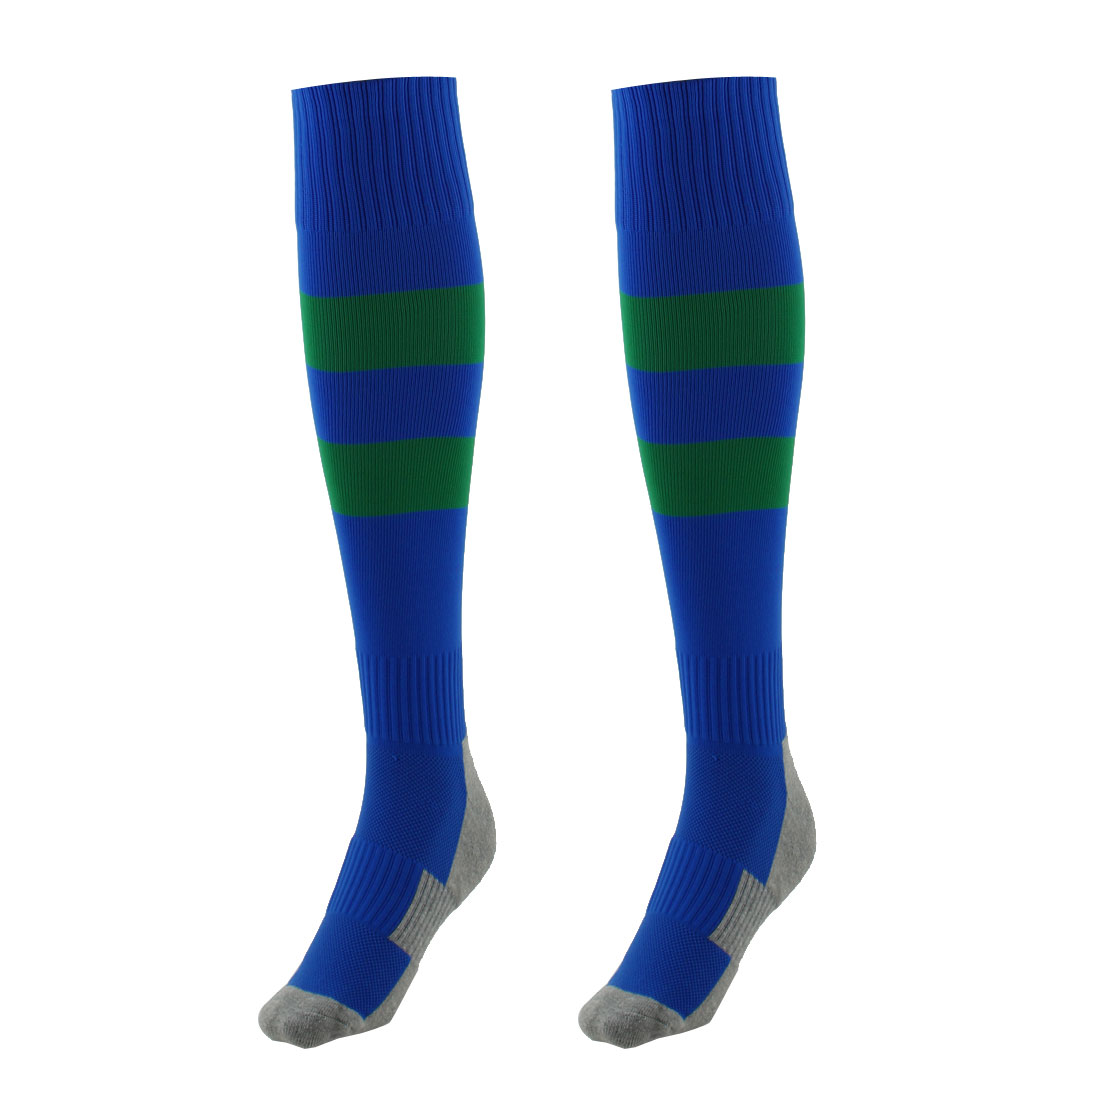 Outdoor Sports Nylon Knee High Style Stretch Baseball Soccer Football Long Socks Stockings Blue Green Pair